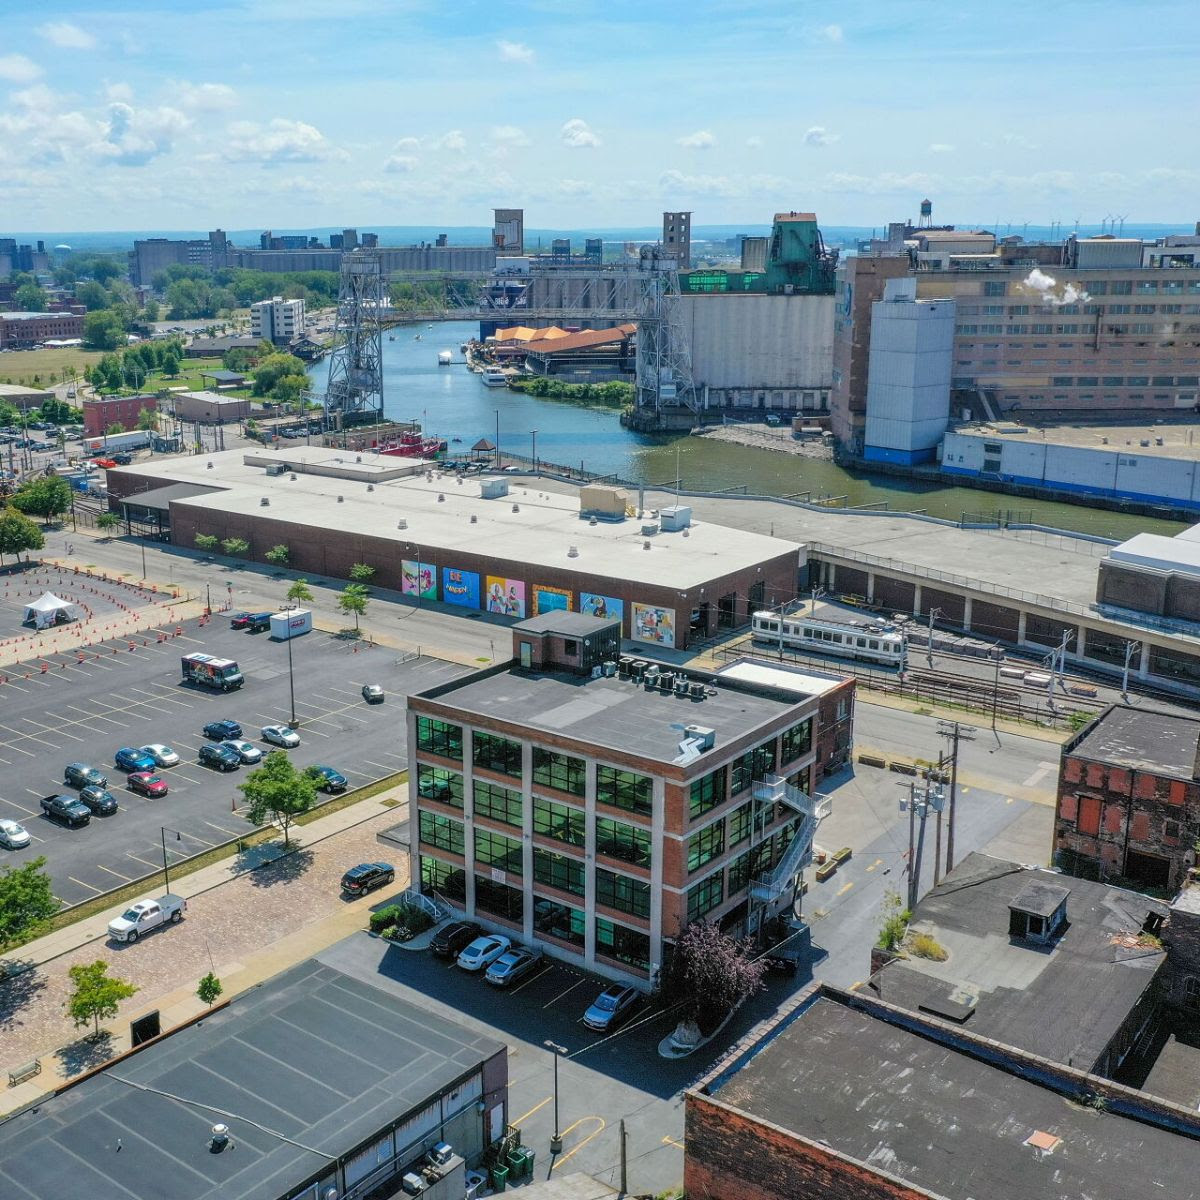 Furnished Penthouse Office Available in Historic Cobblestone District